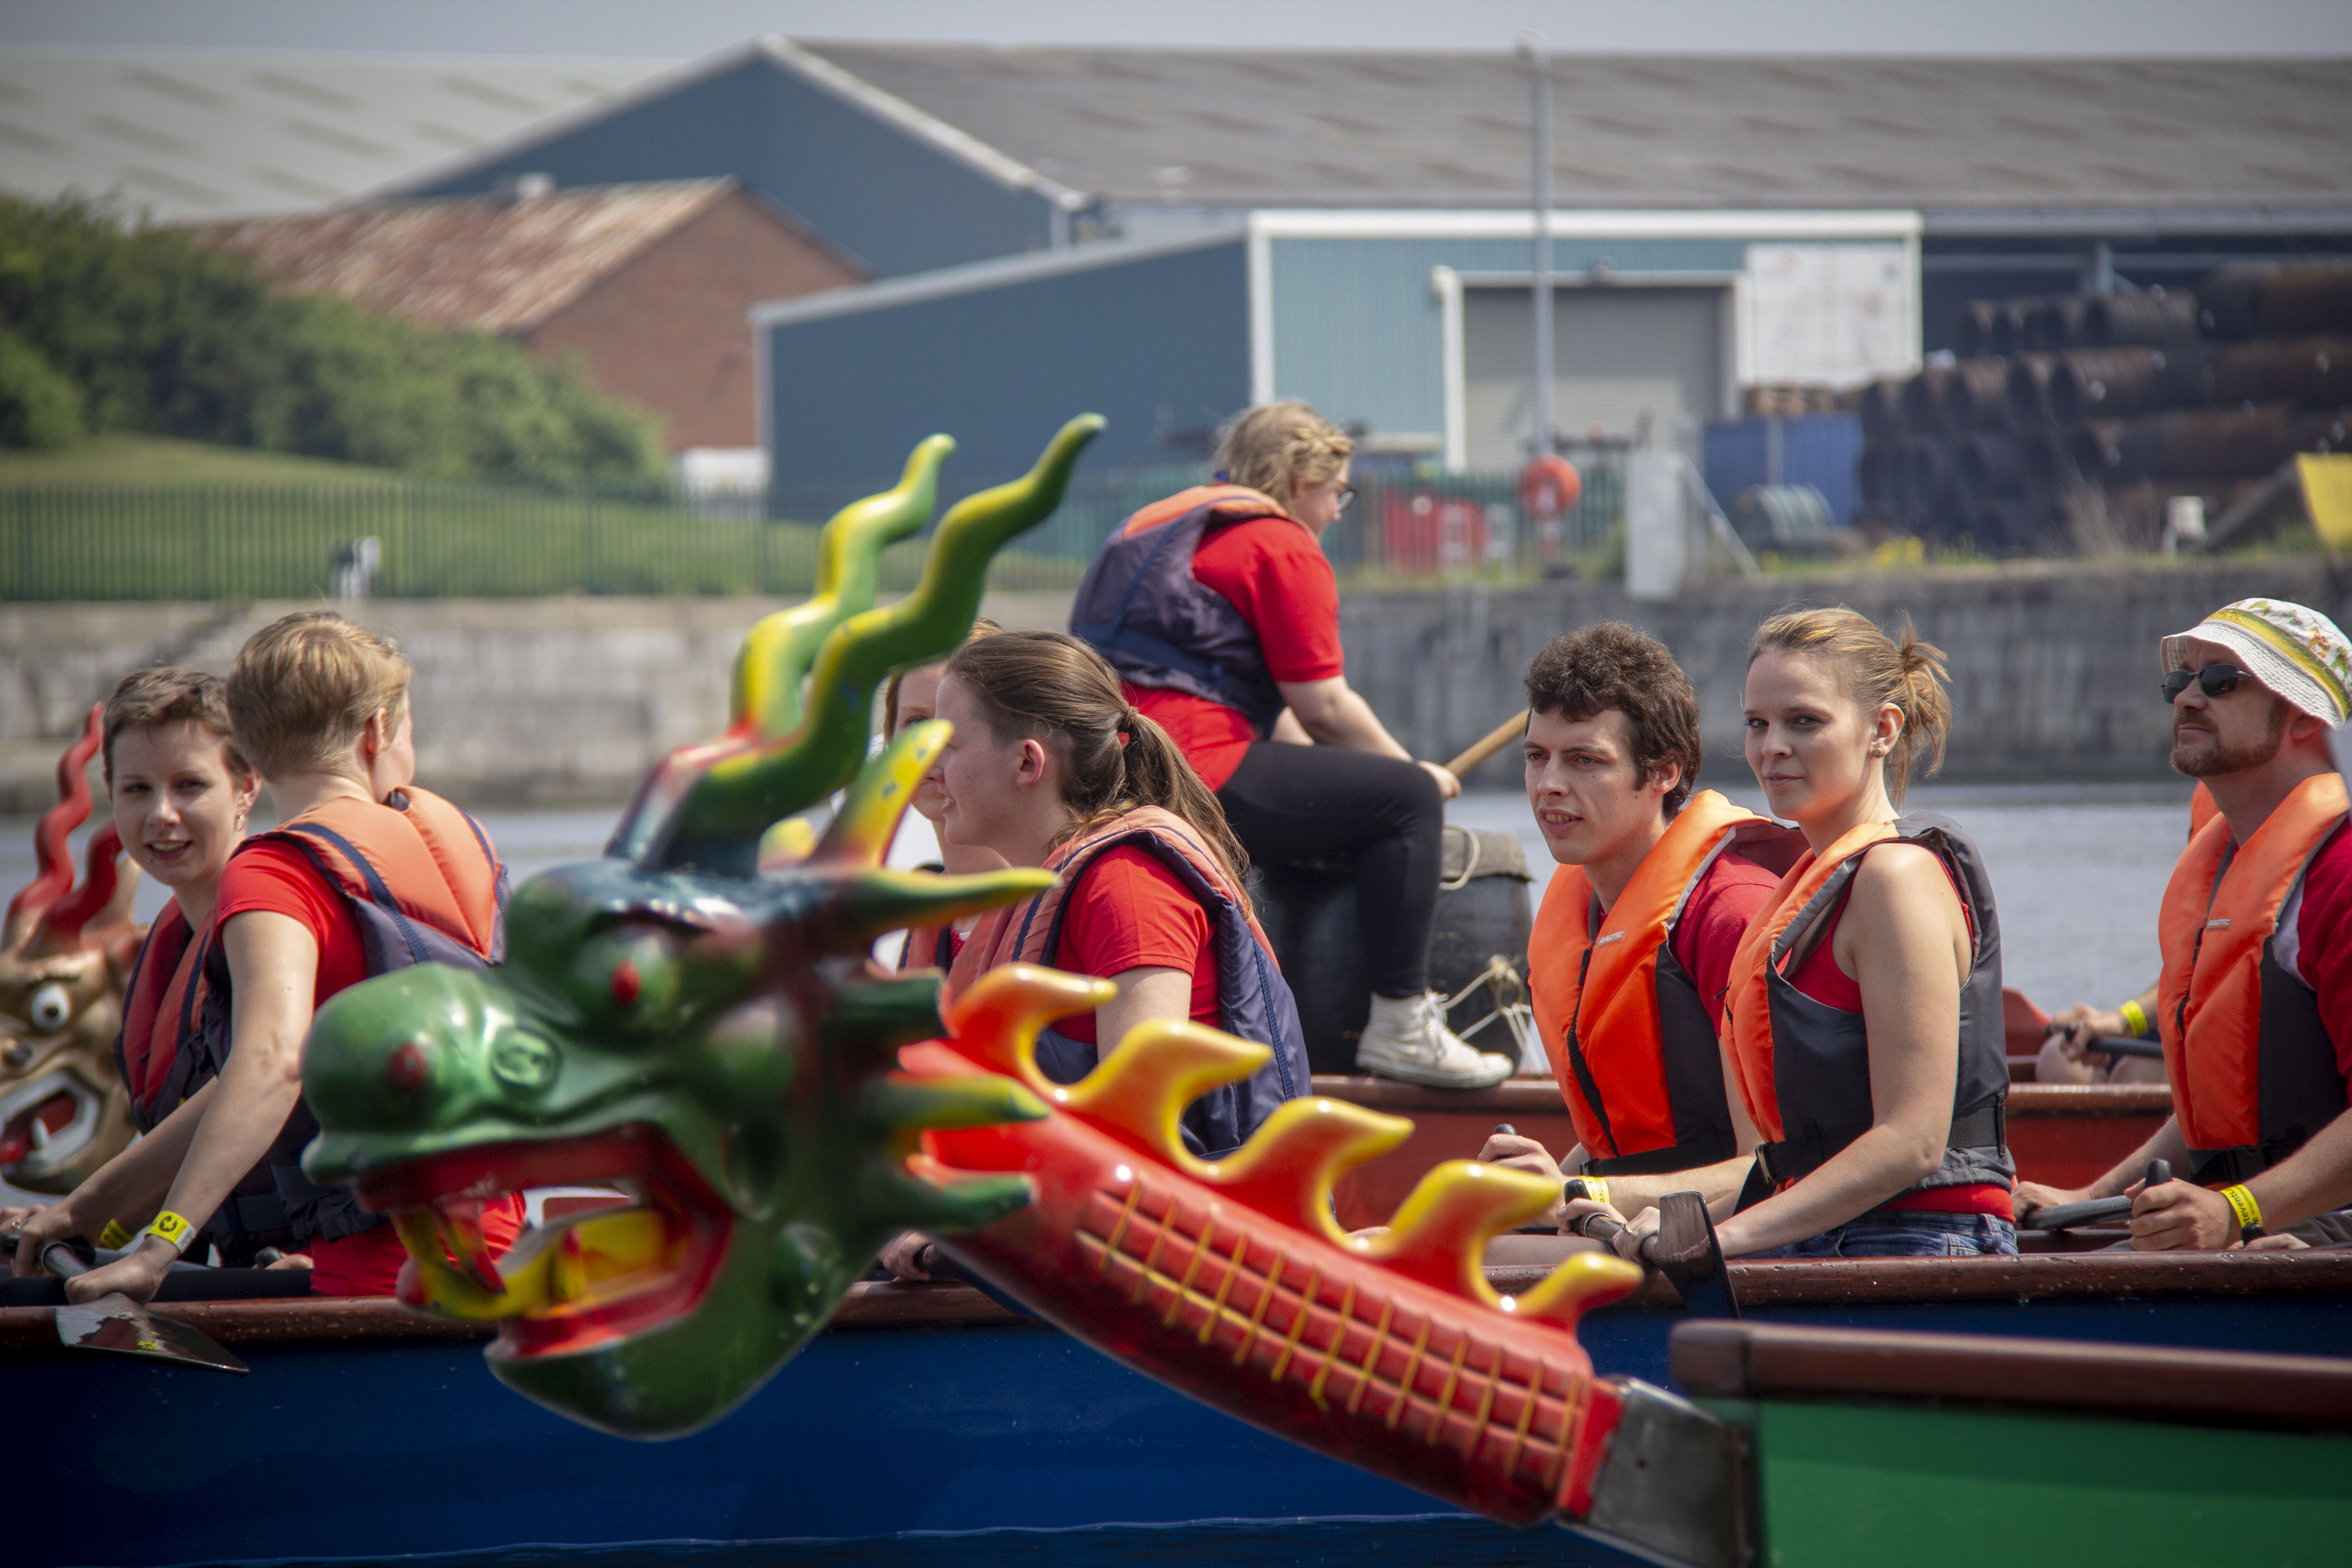 2018 Dragon Boat Challenge photos - 270518 60D 2476 Edited